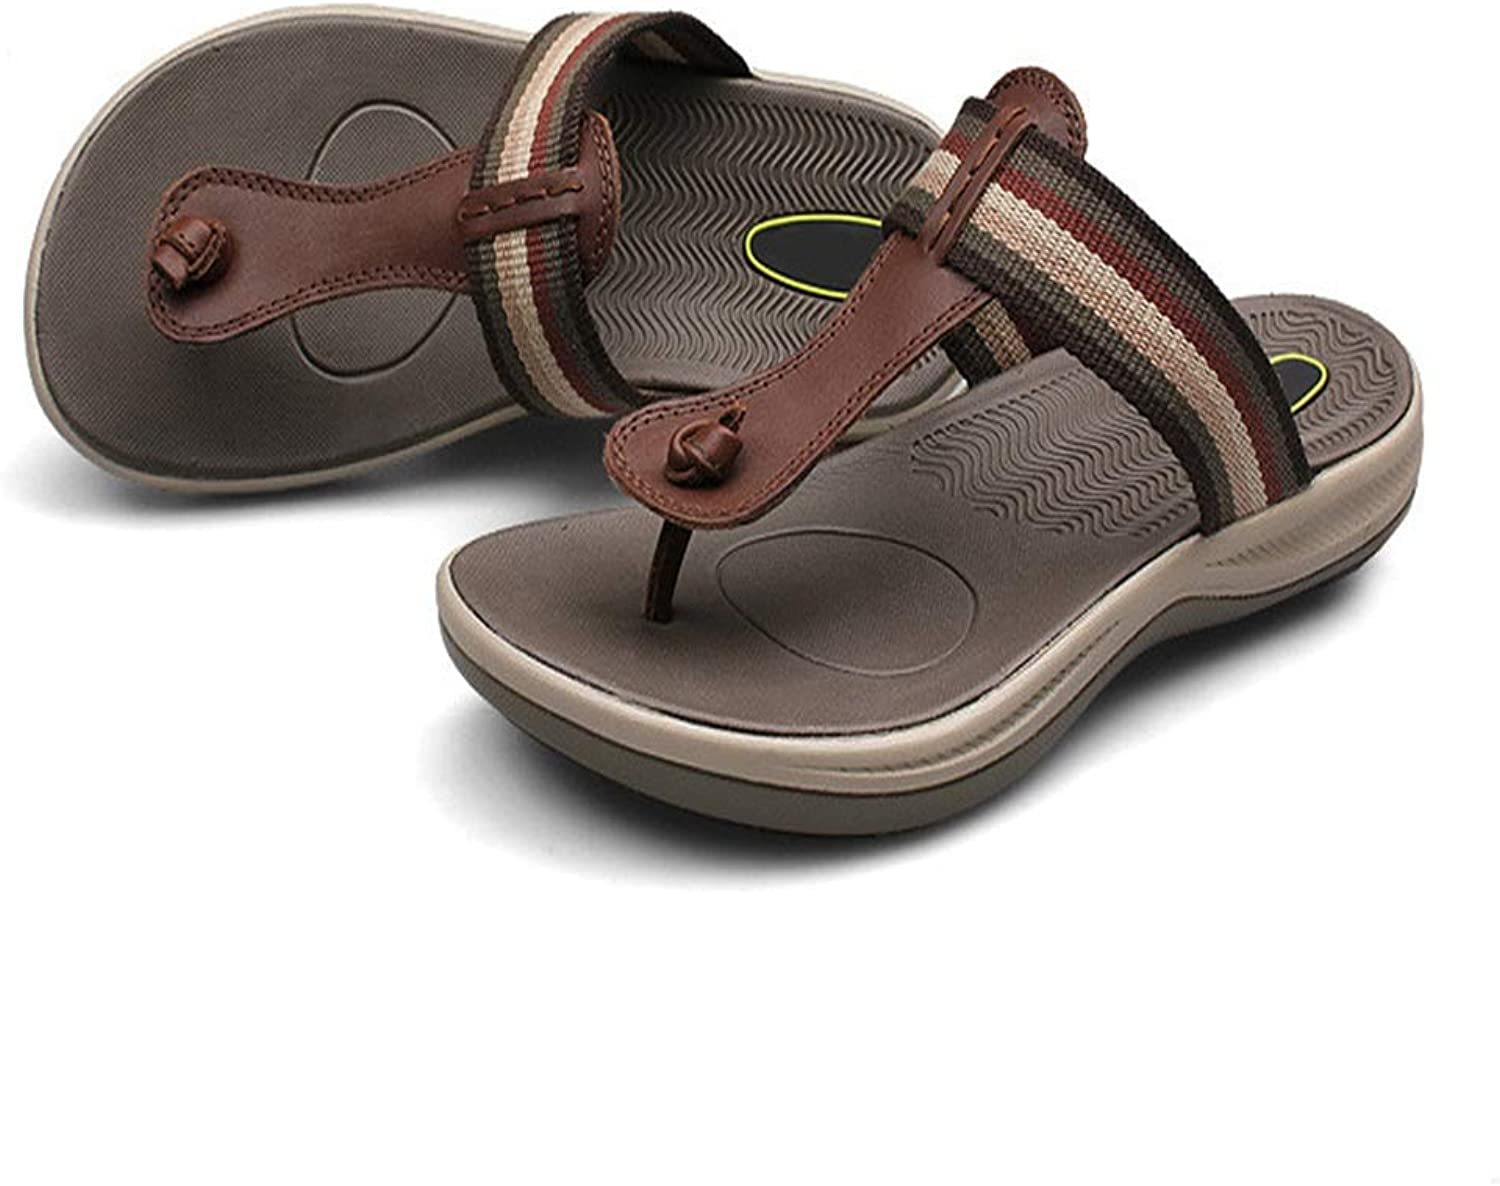 RONGLINGXING Fashion Summer Outdoor Casual Flip Flop For Man Outdoor Beach Comfortable Slippers Cloth Leather Upper Non-slip Flat Sandals Lightweight Breathable (color   Brown, Size   9.5 UK)